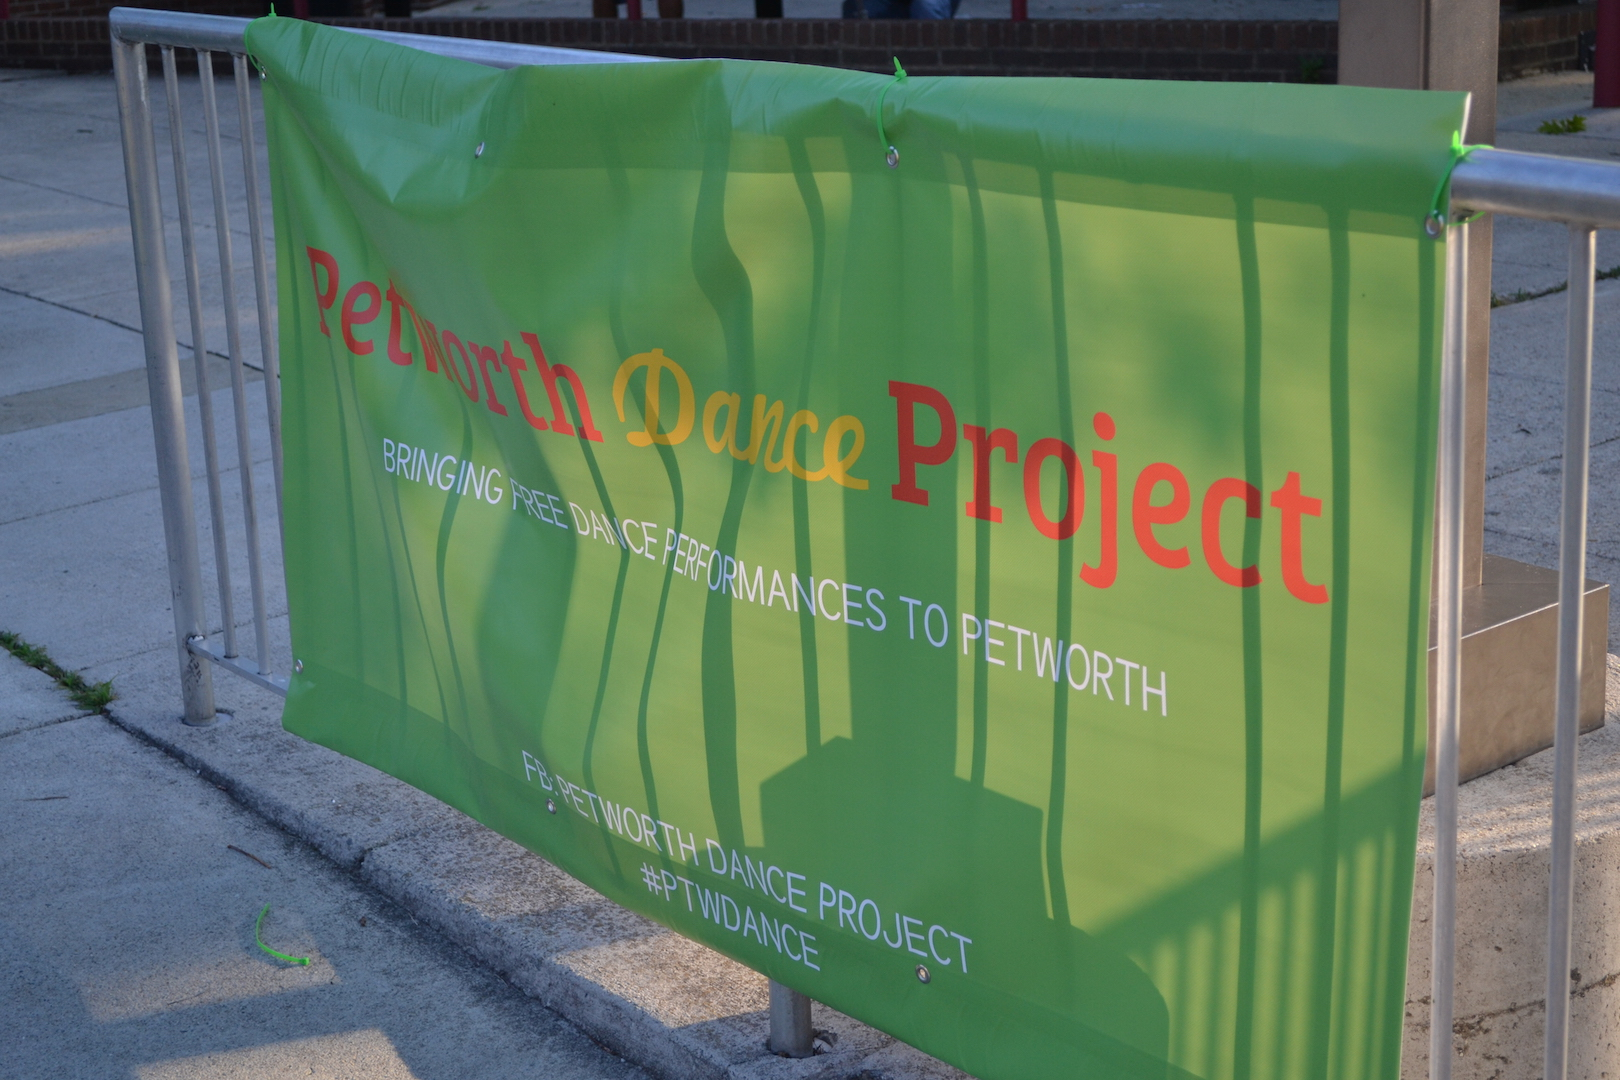 Petworth Dance Project